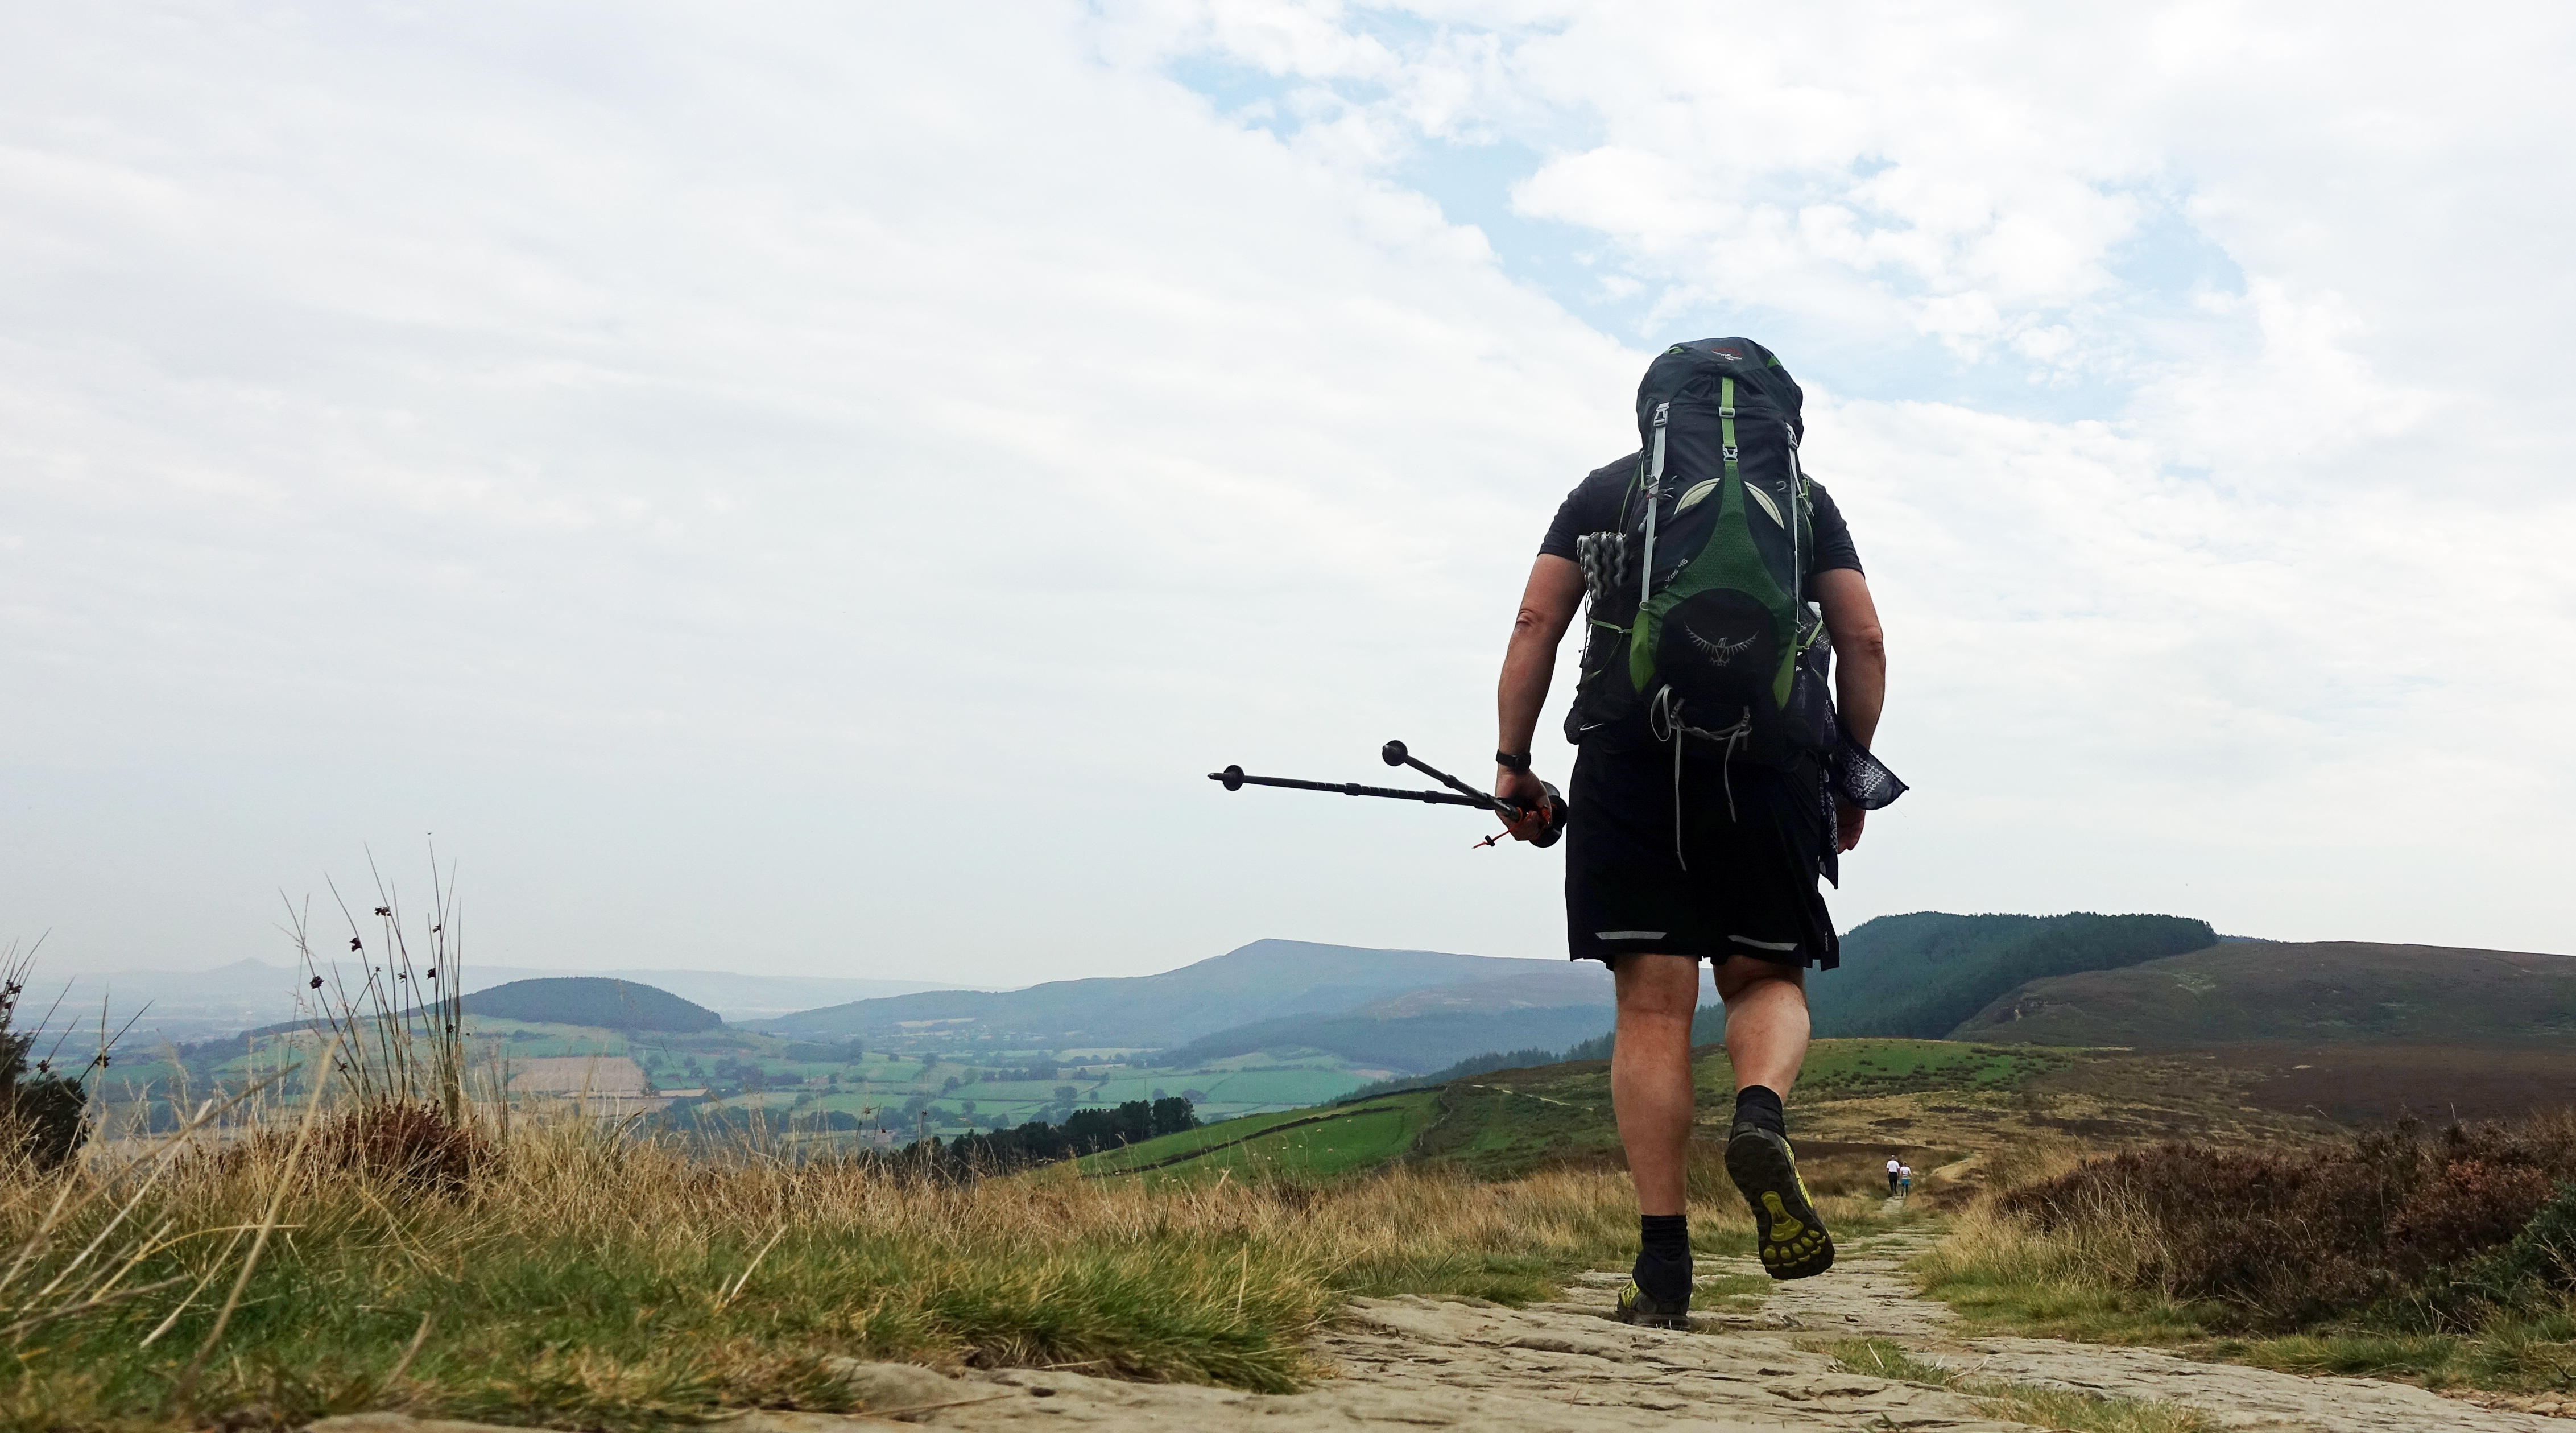 Despite my narrower Osprey Exos proving uncomfortable with the heavier load being carried, the Cleveland Way paths are invariably good and easily traversed